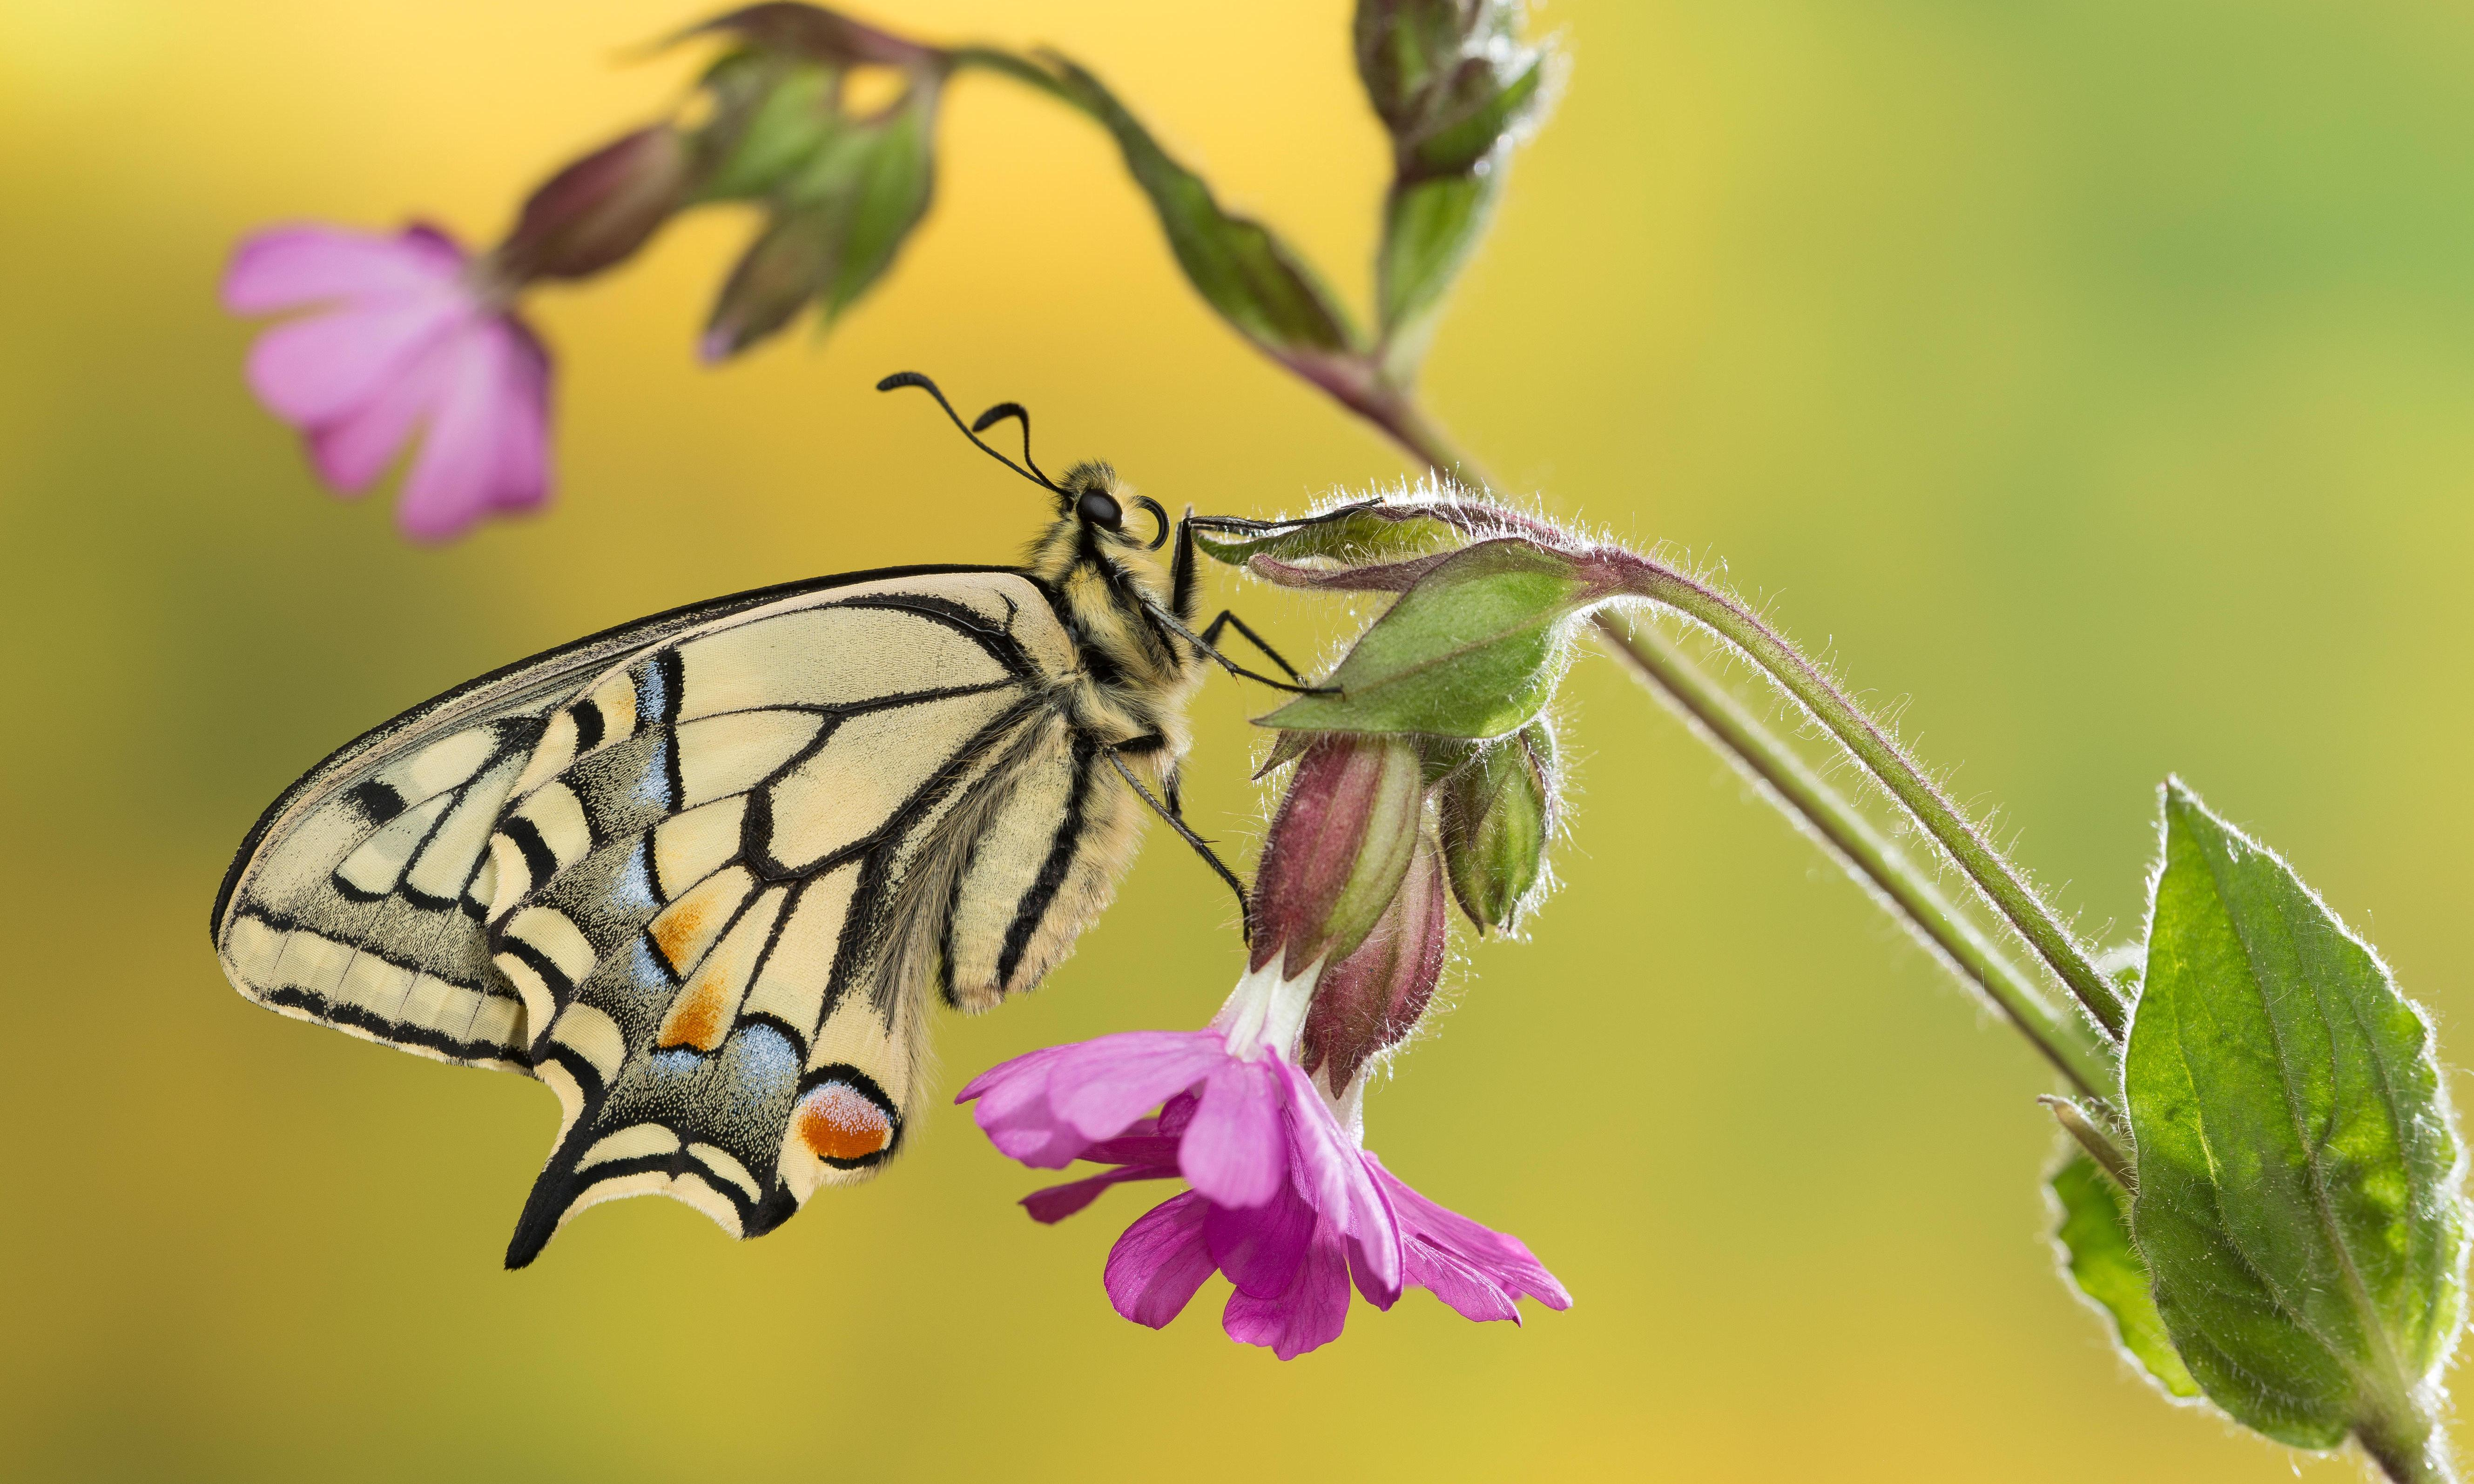 Much persecuted swallowtails dance away unhurt: Country diary, 6 June 1919